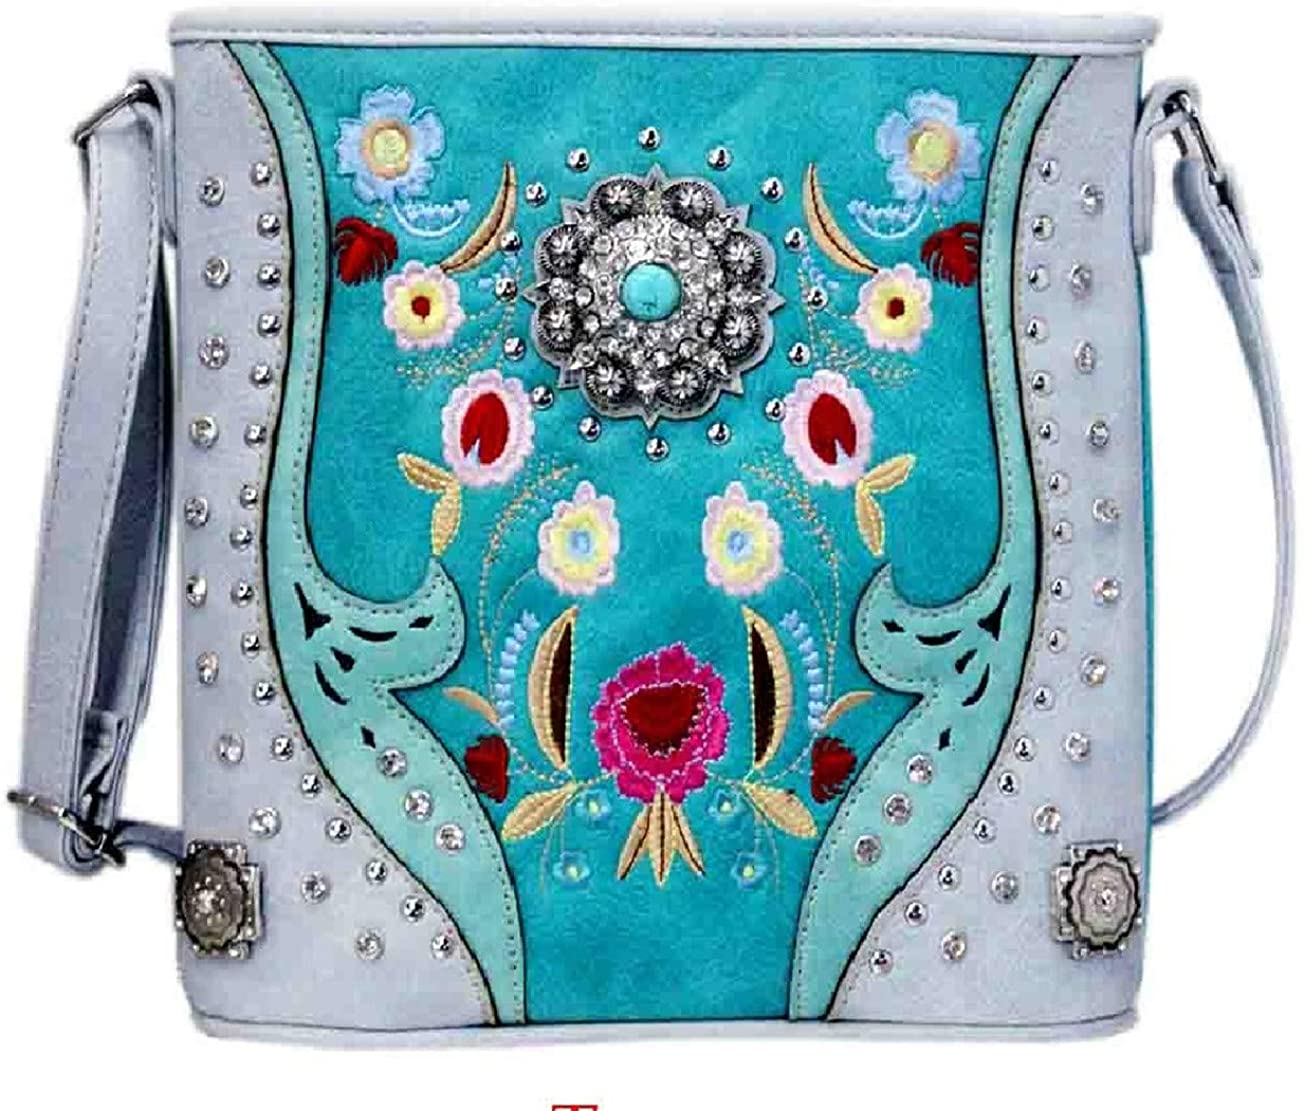 Texas West Embroidered Floral Rhinestone Crossbody Messenger Bag in 4 colors